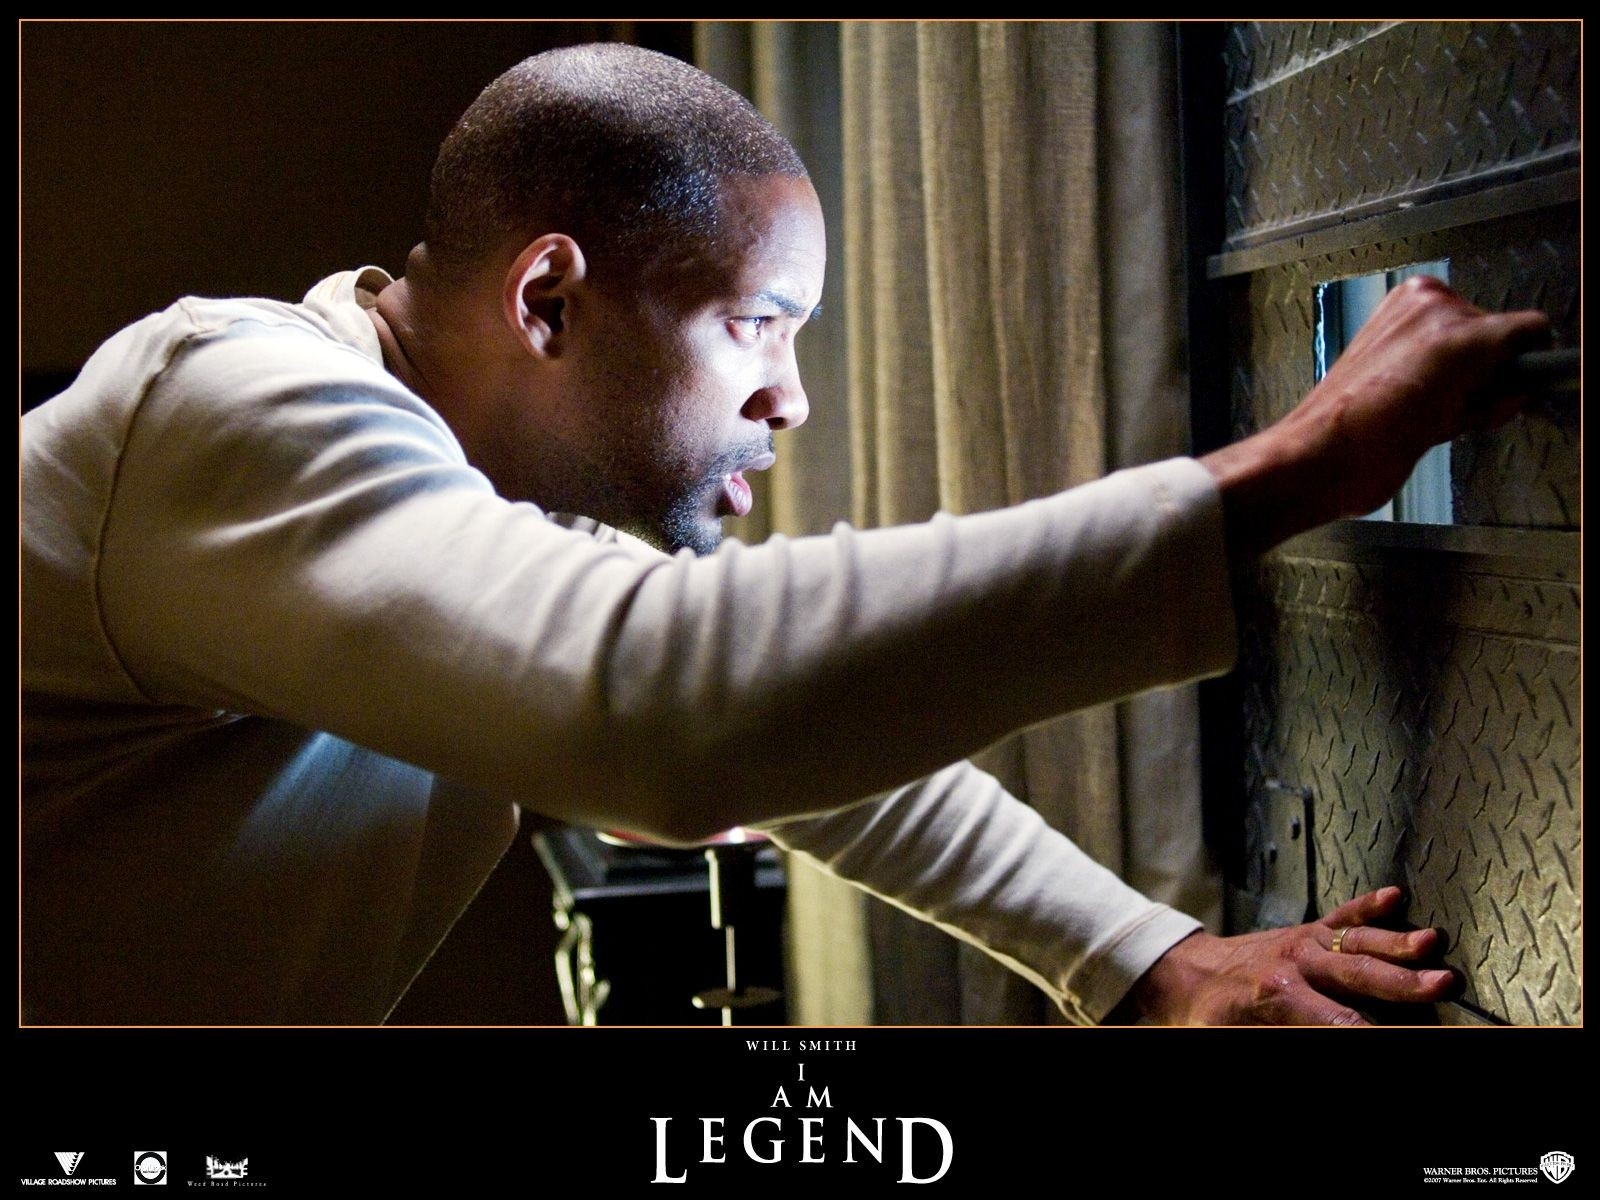 Wallpaper del film Io sono leggenda con Will Smith